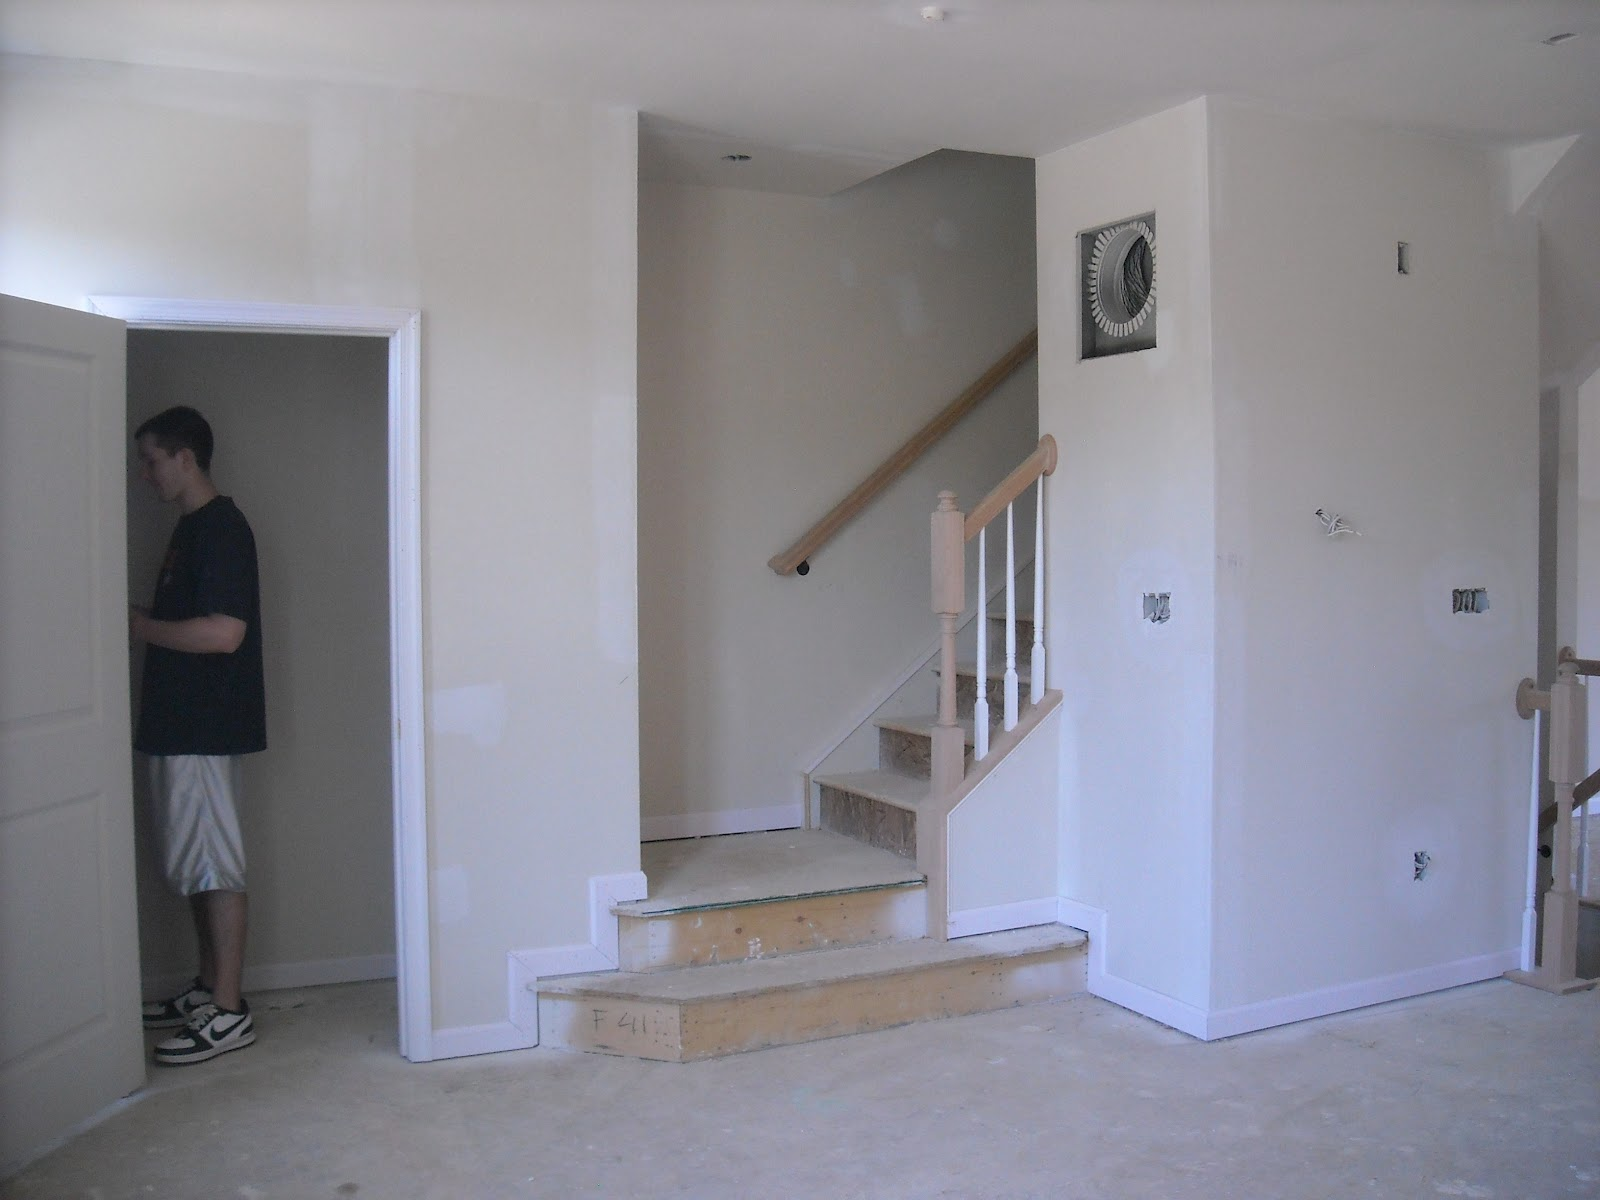 Stairs leading to 3rd floor